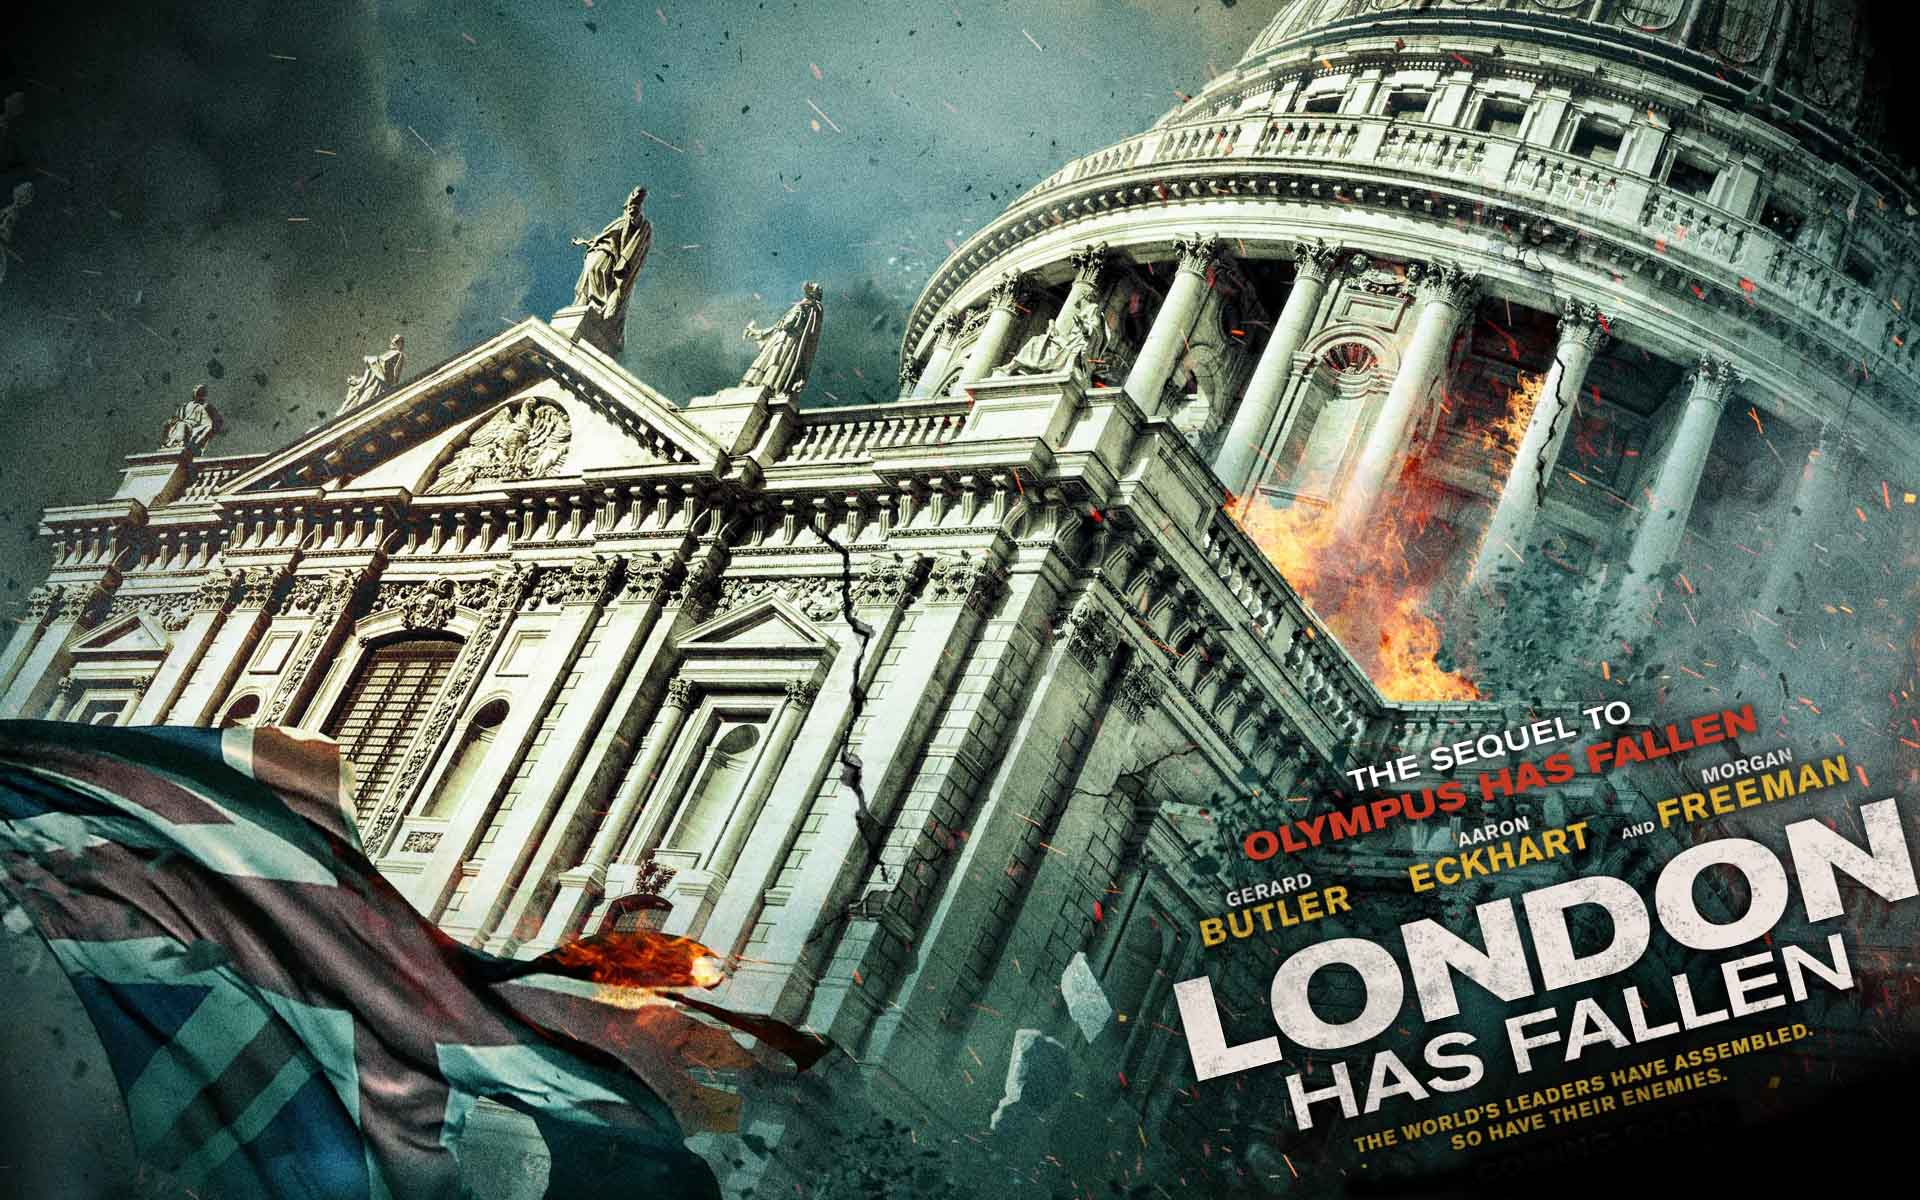 London Has Fallen Movie Poster Wallpaper 52341 1920x1200px